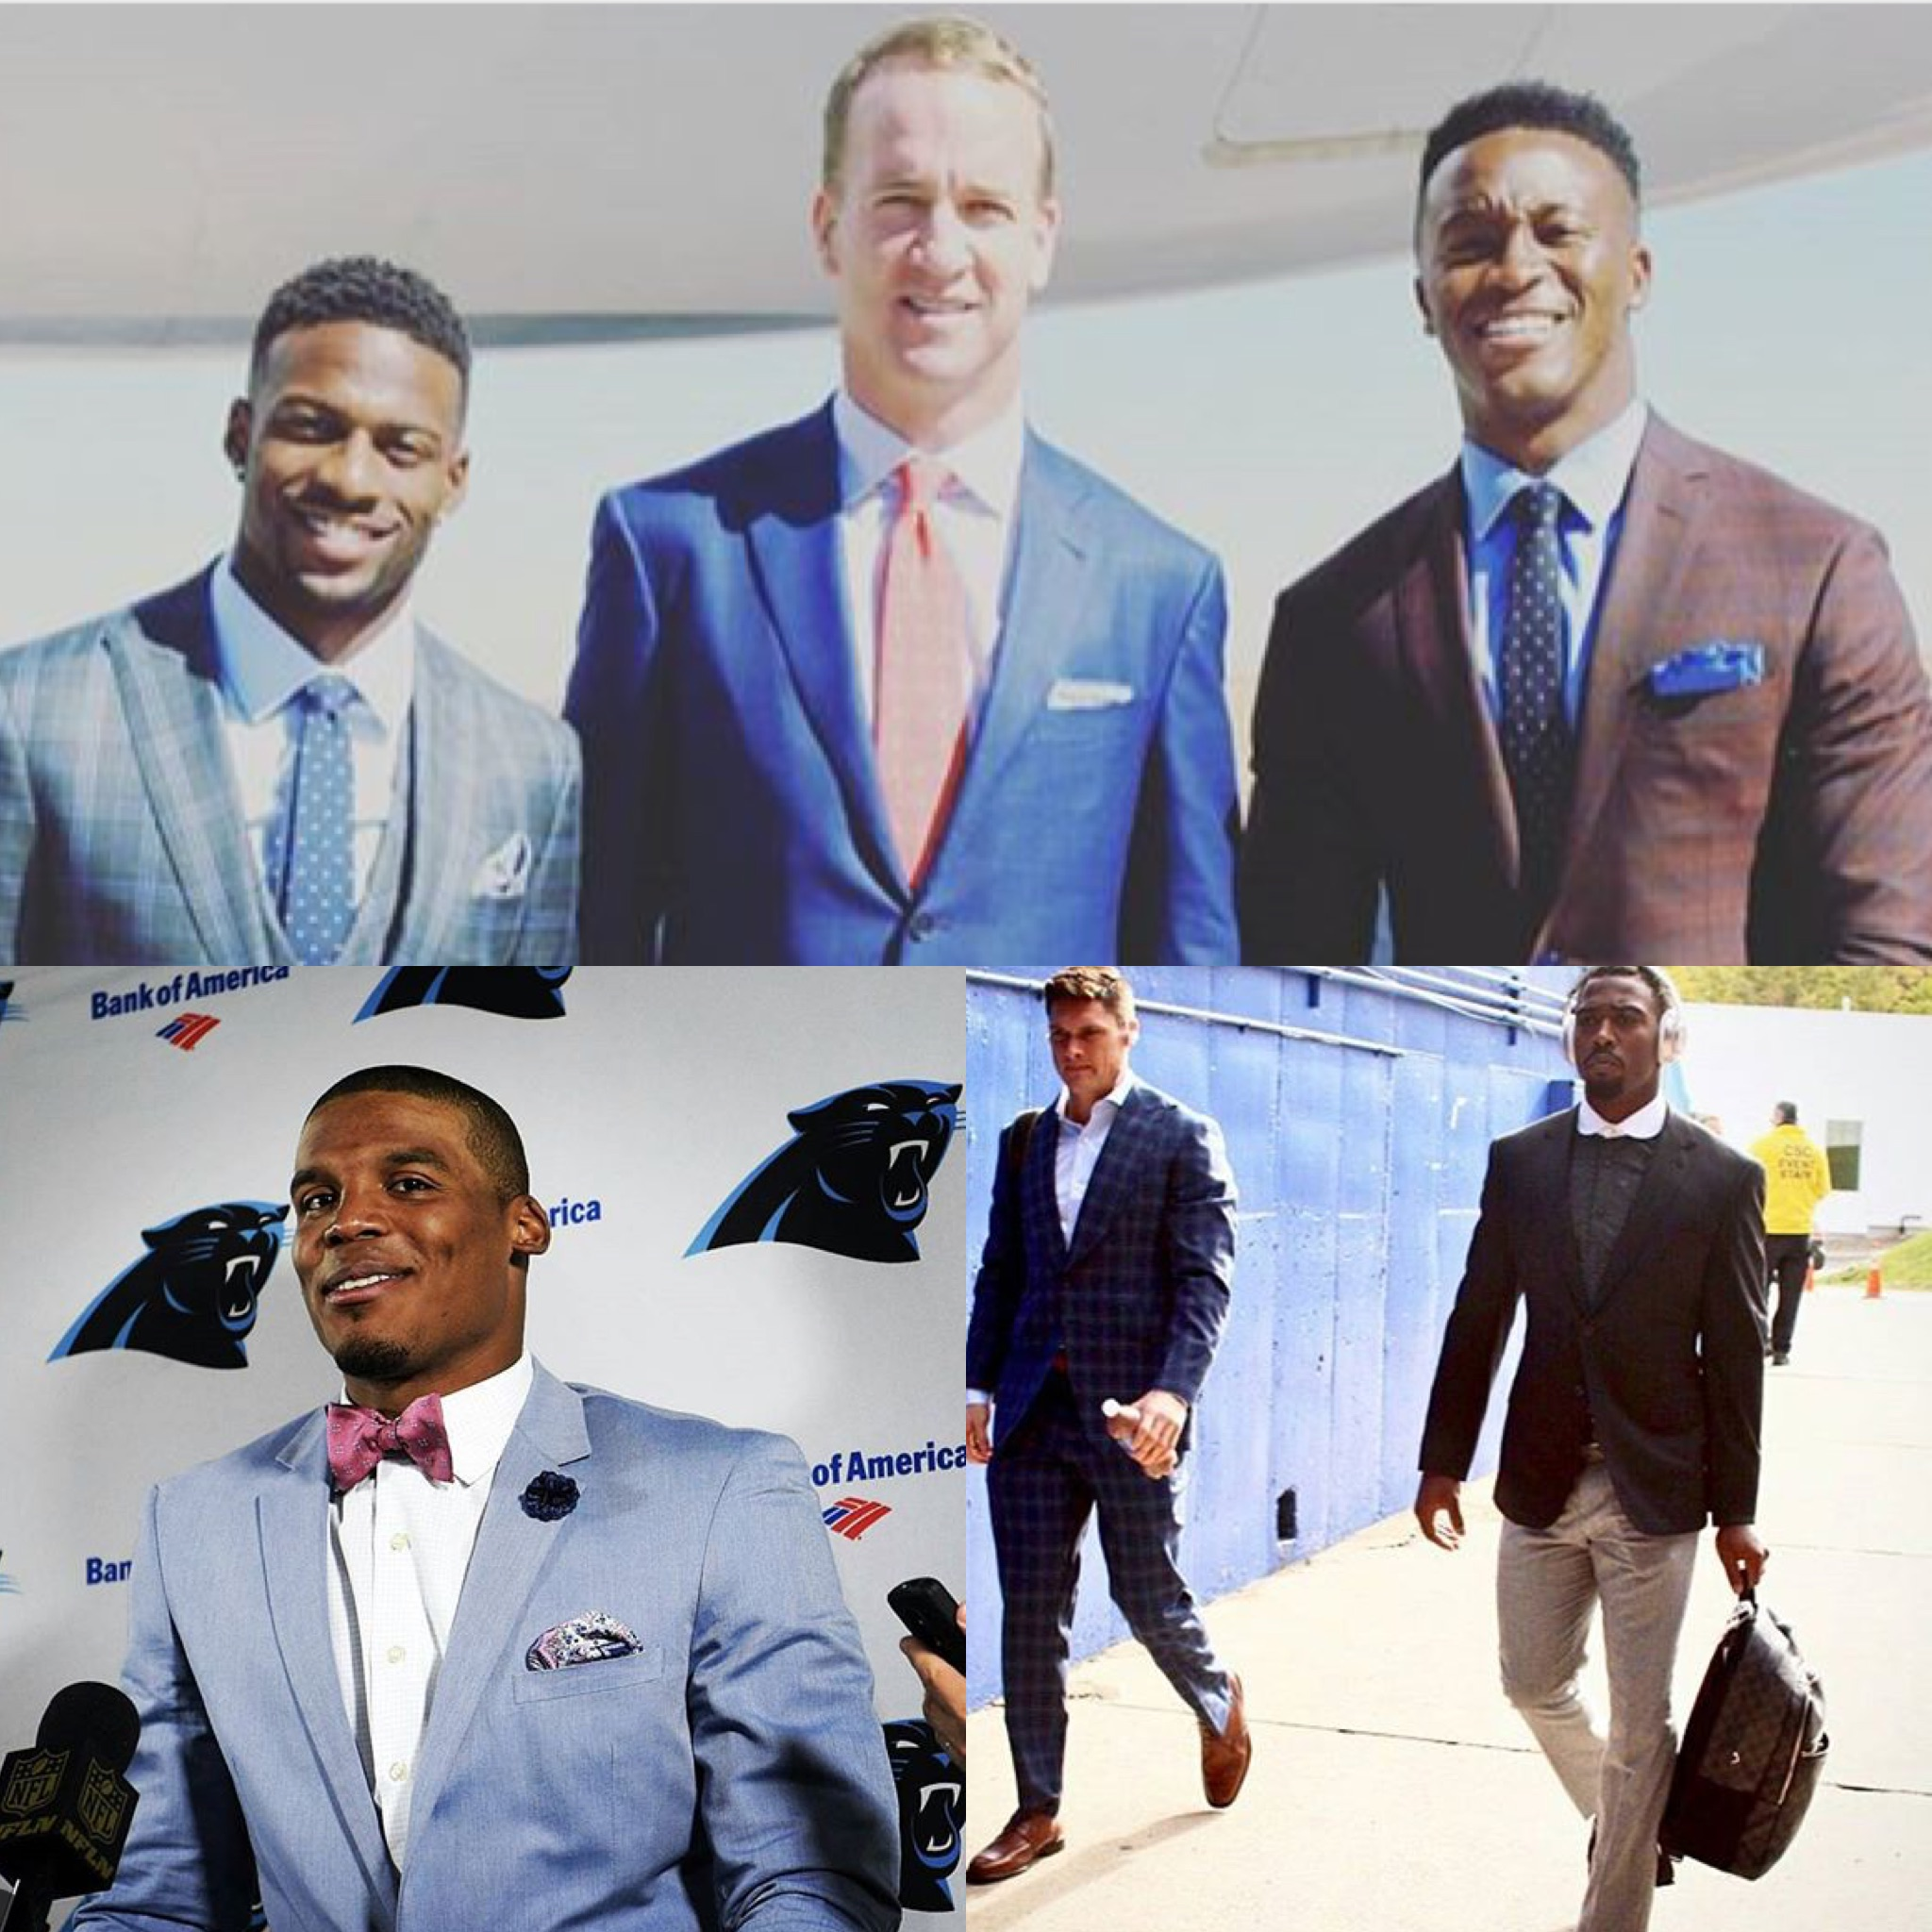 NFL STYLE: Cam Newton, Peyton Manning, Tyrod Taylor And More